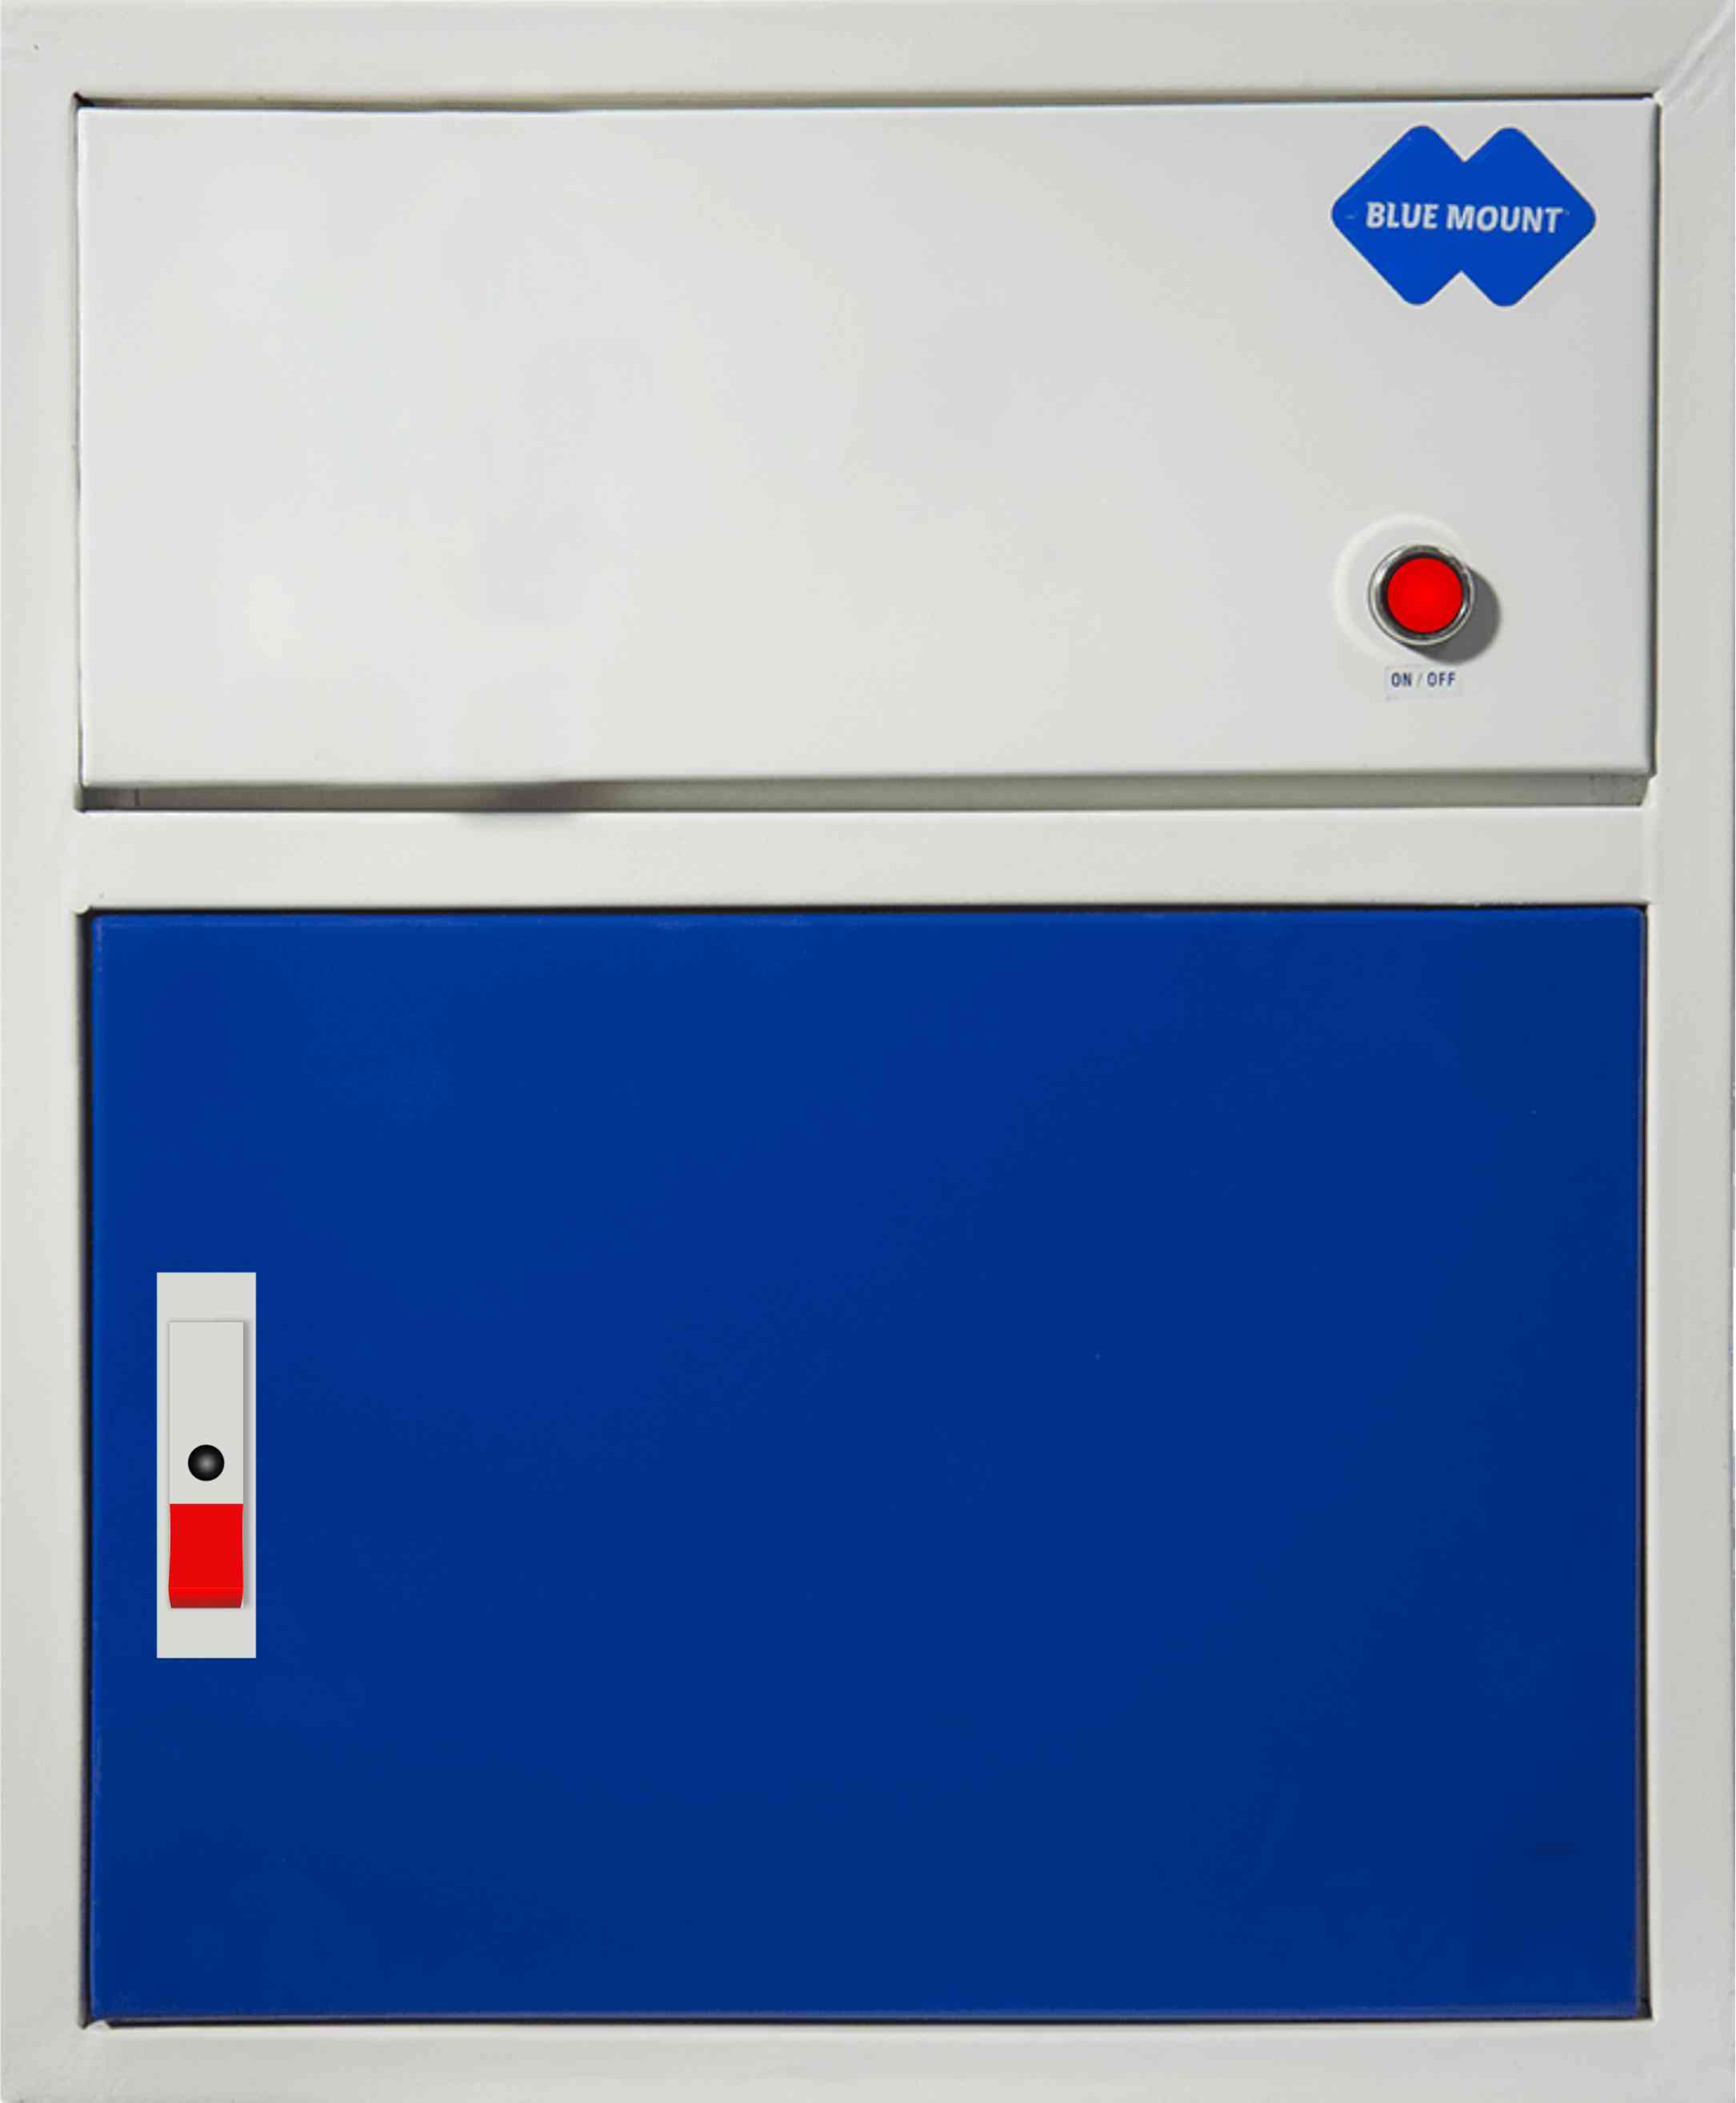 Blue Mount Shine 100 UV Water Purifier